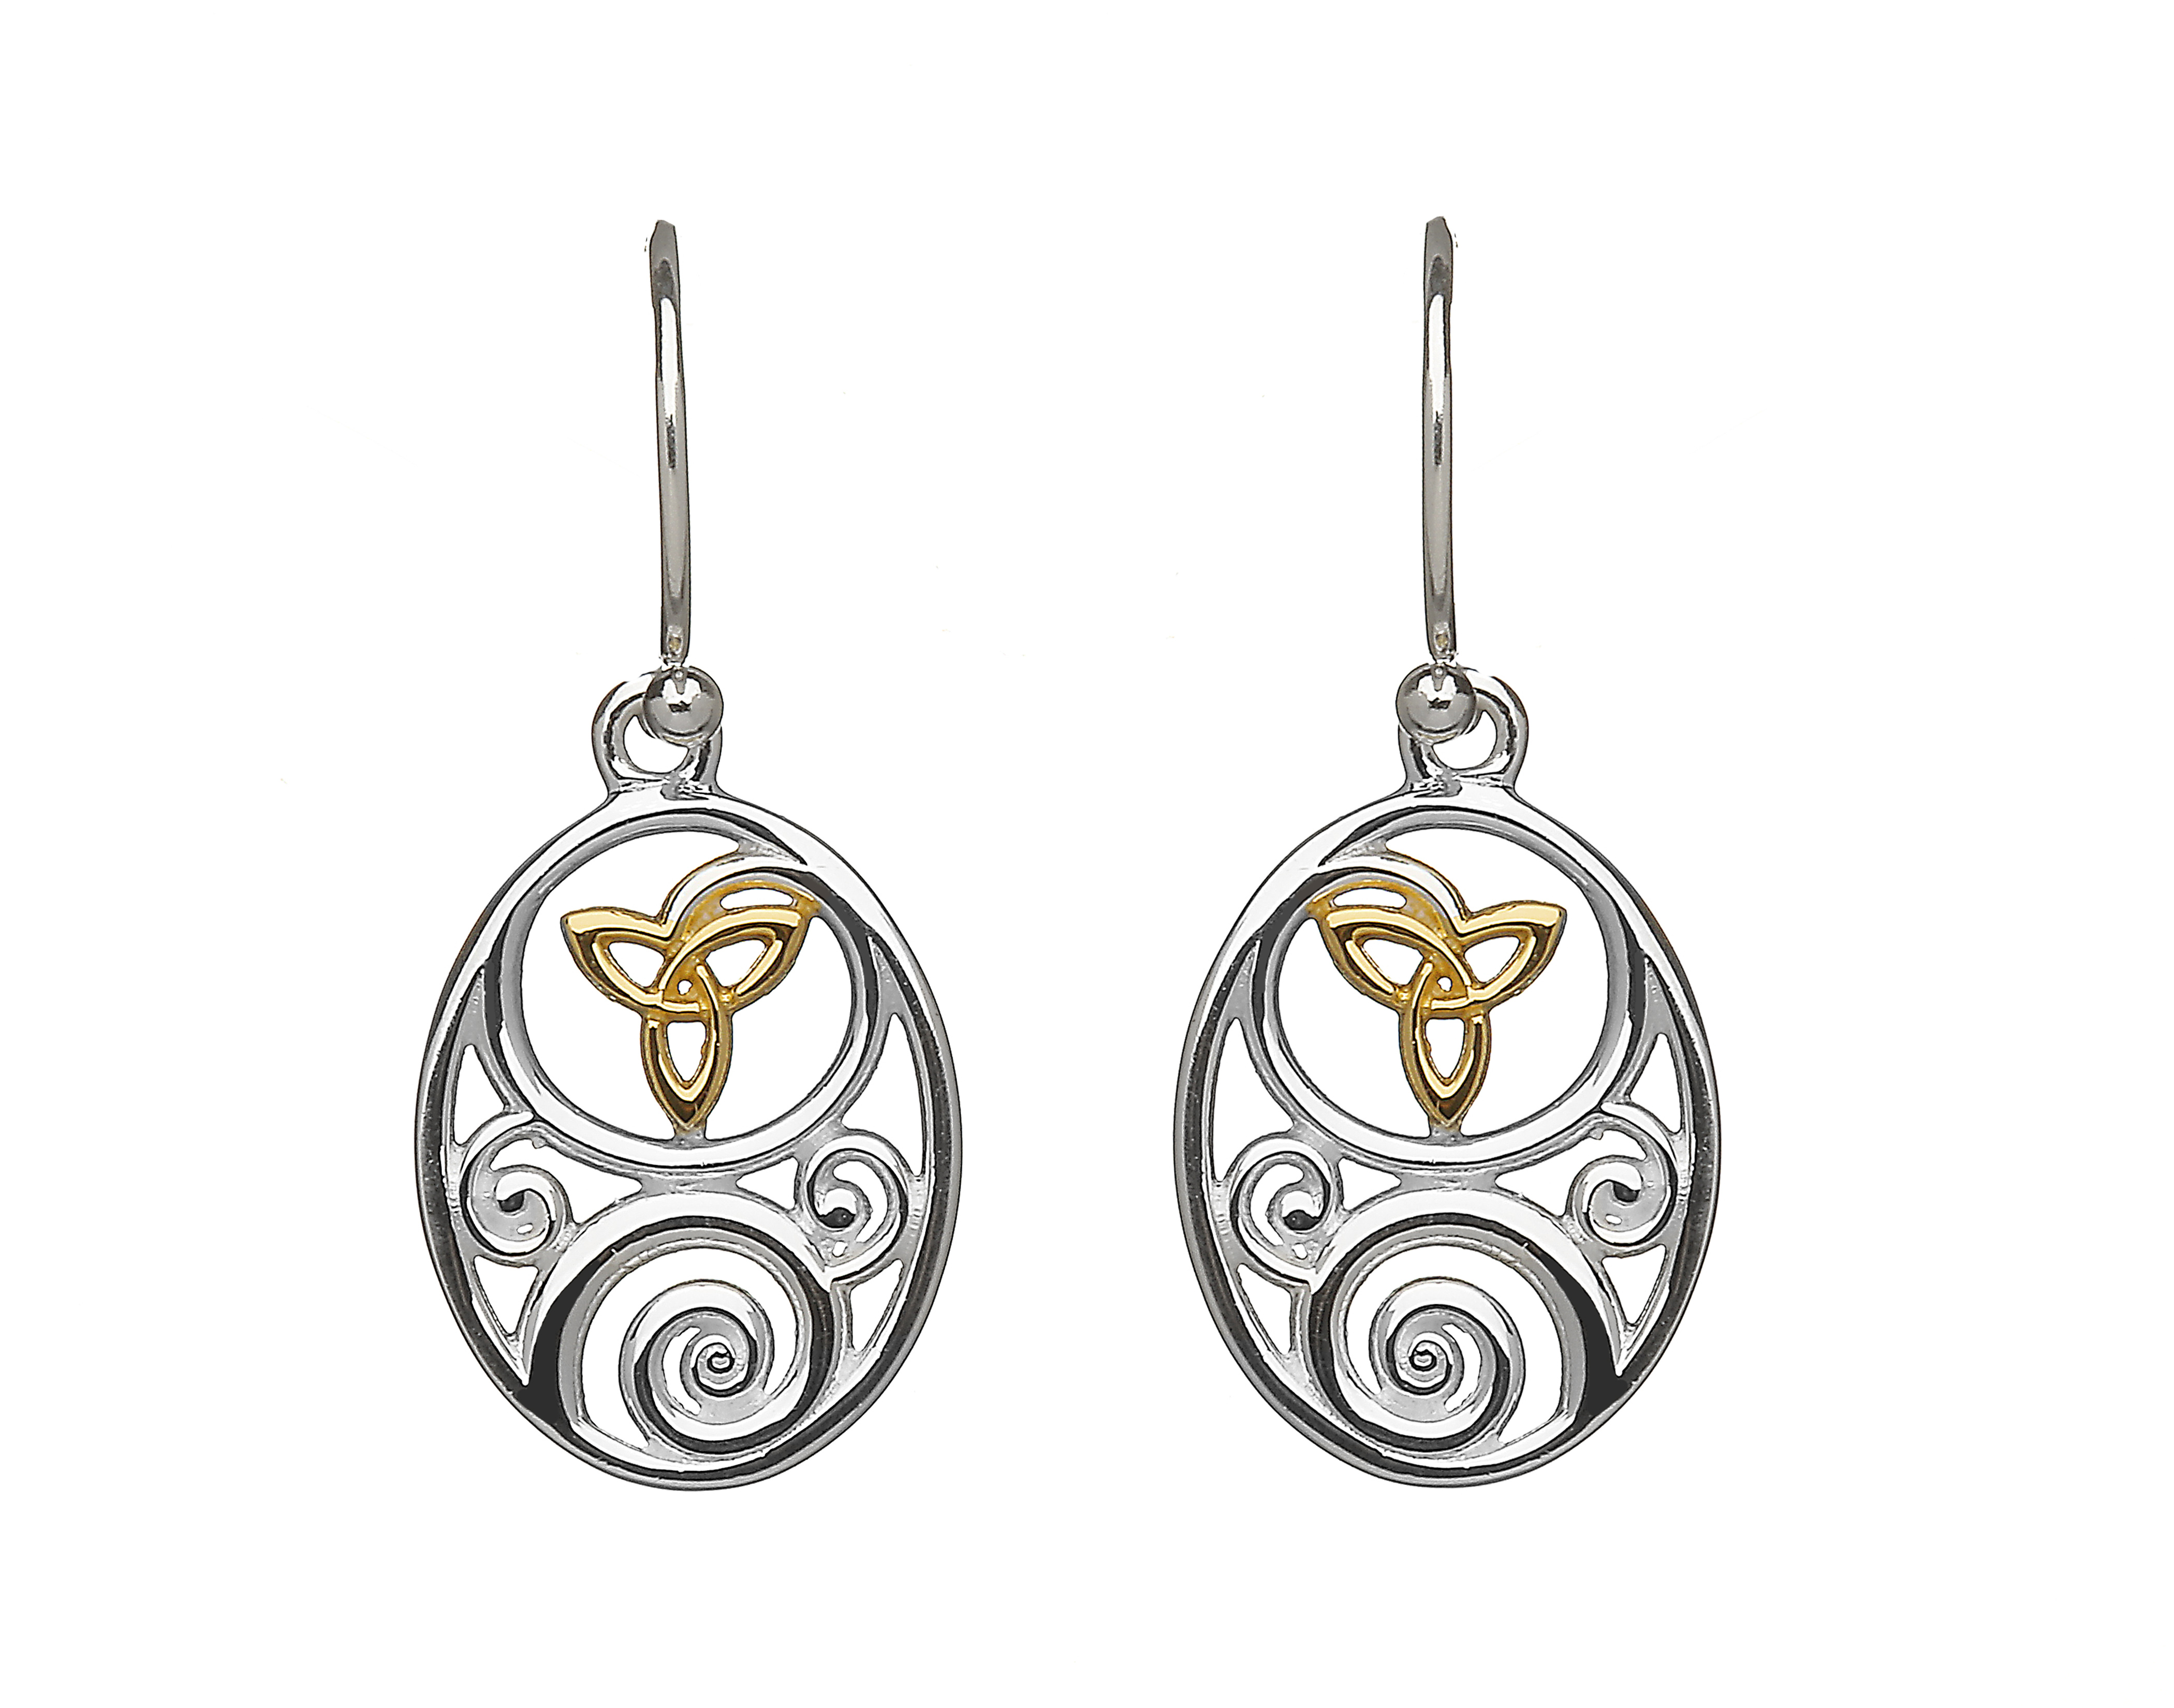 811f4f1c2 Sterling silver oval Celtic design lever back earrings - Celtic Designs  Jewelry